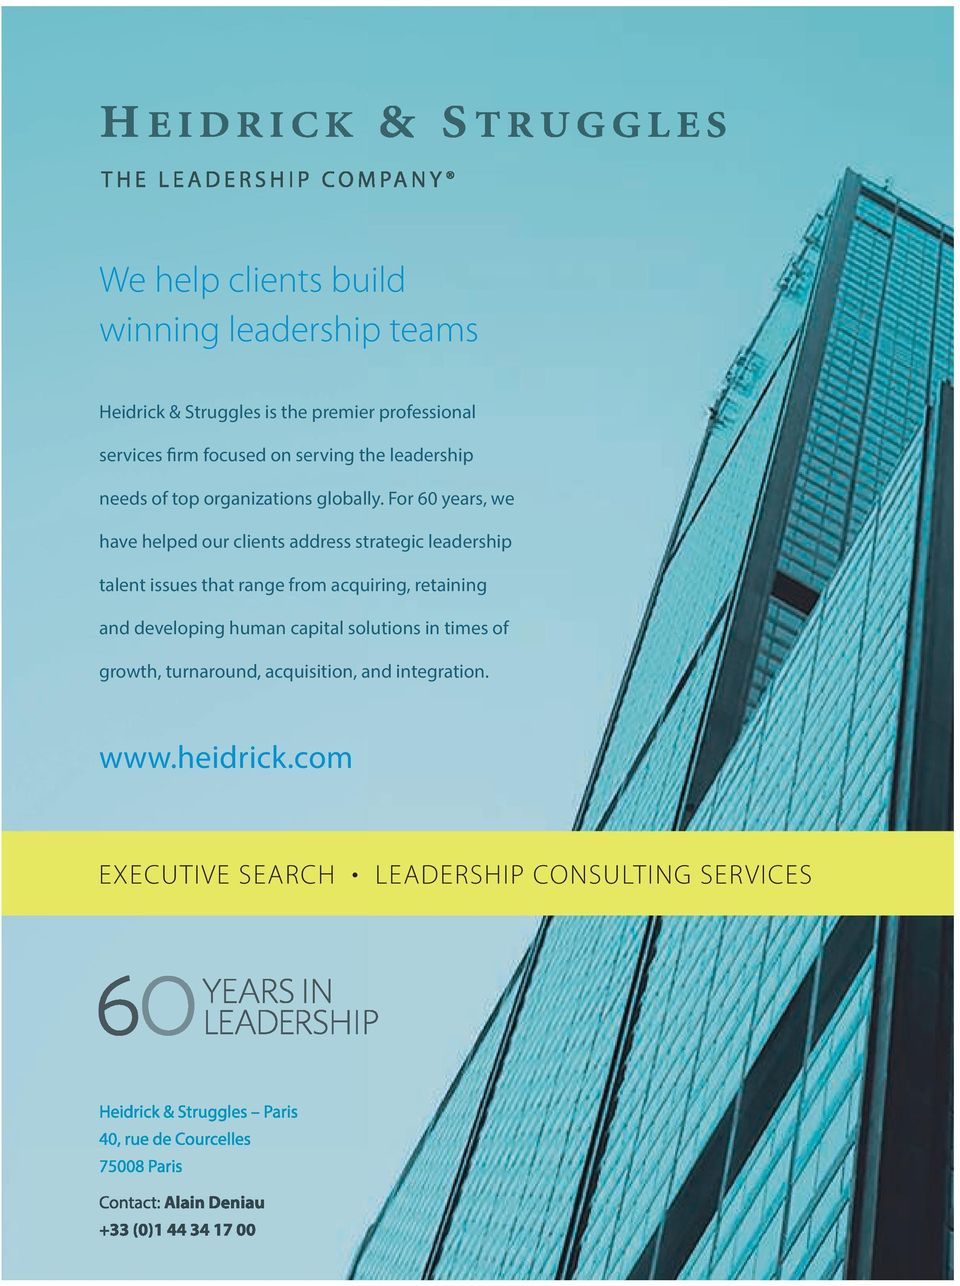 For 60 years, we have helped our clients address strategic leadership talent issues that range from acquiring,